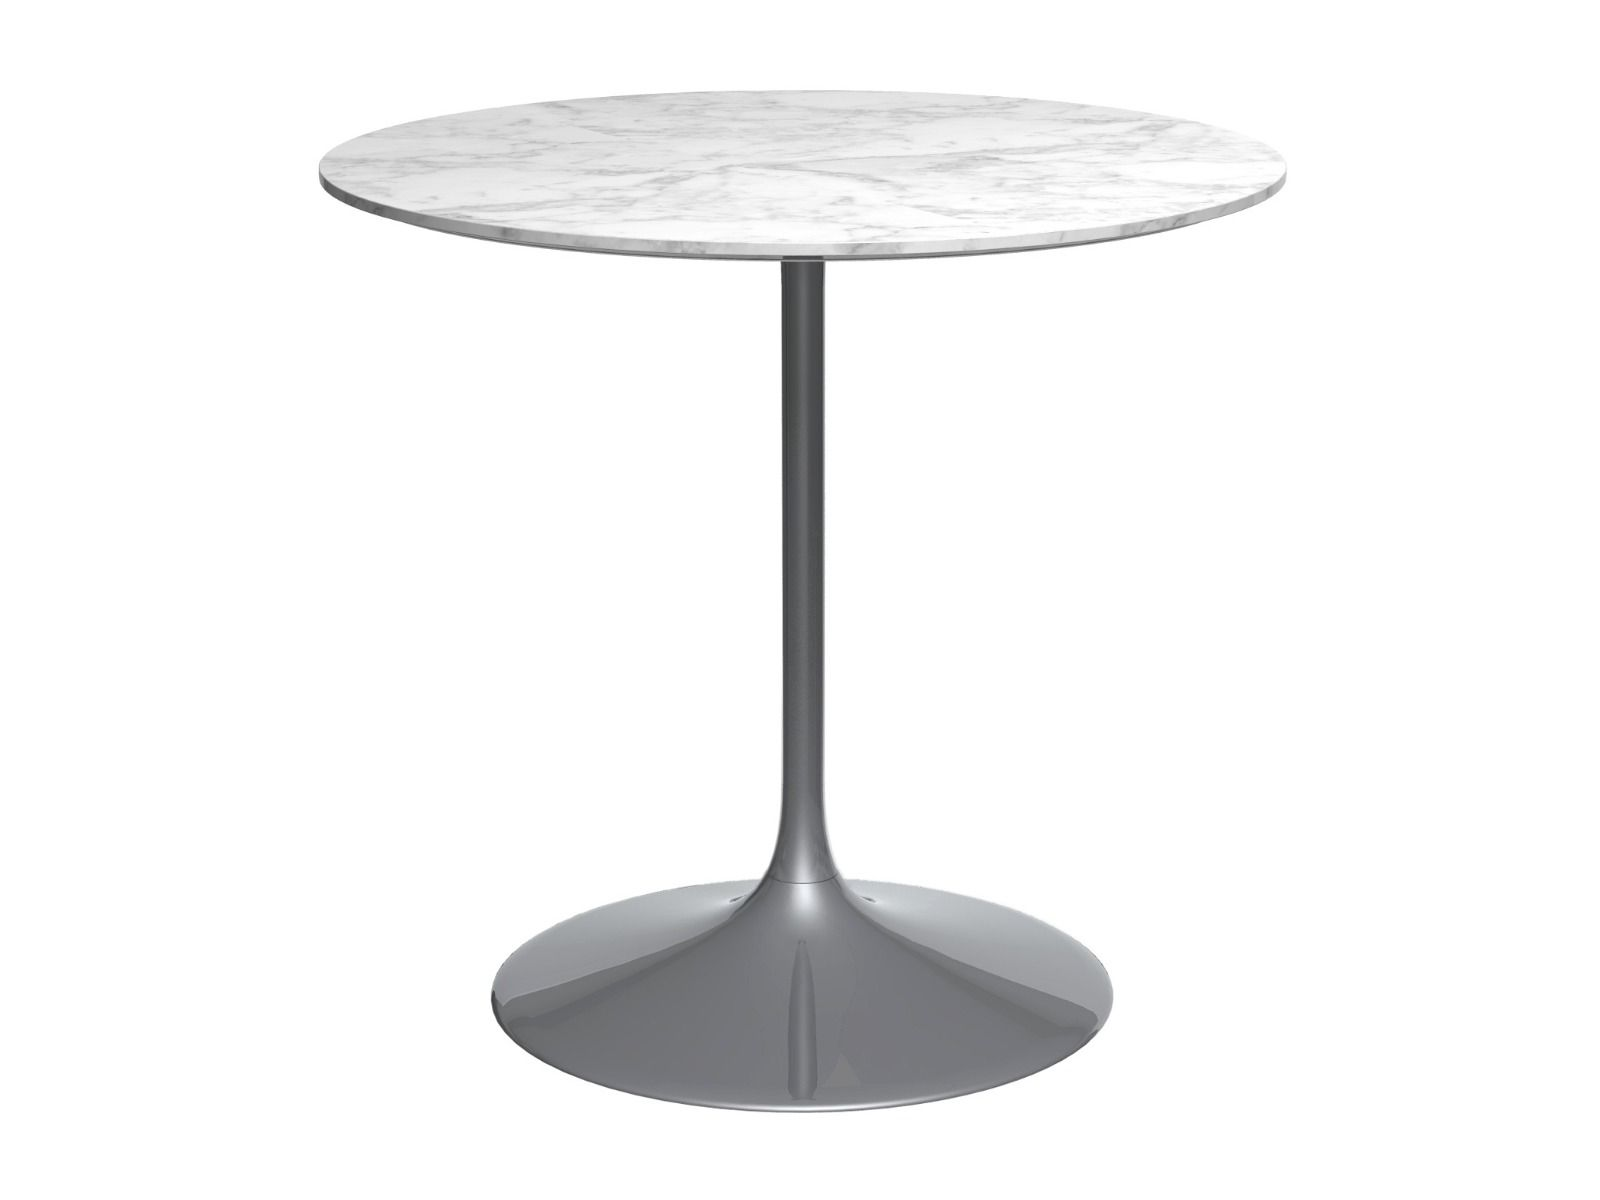 circular dining table collection from gillmore rh gillmorespace com swan glass dining table brass swan dining table